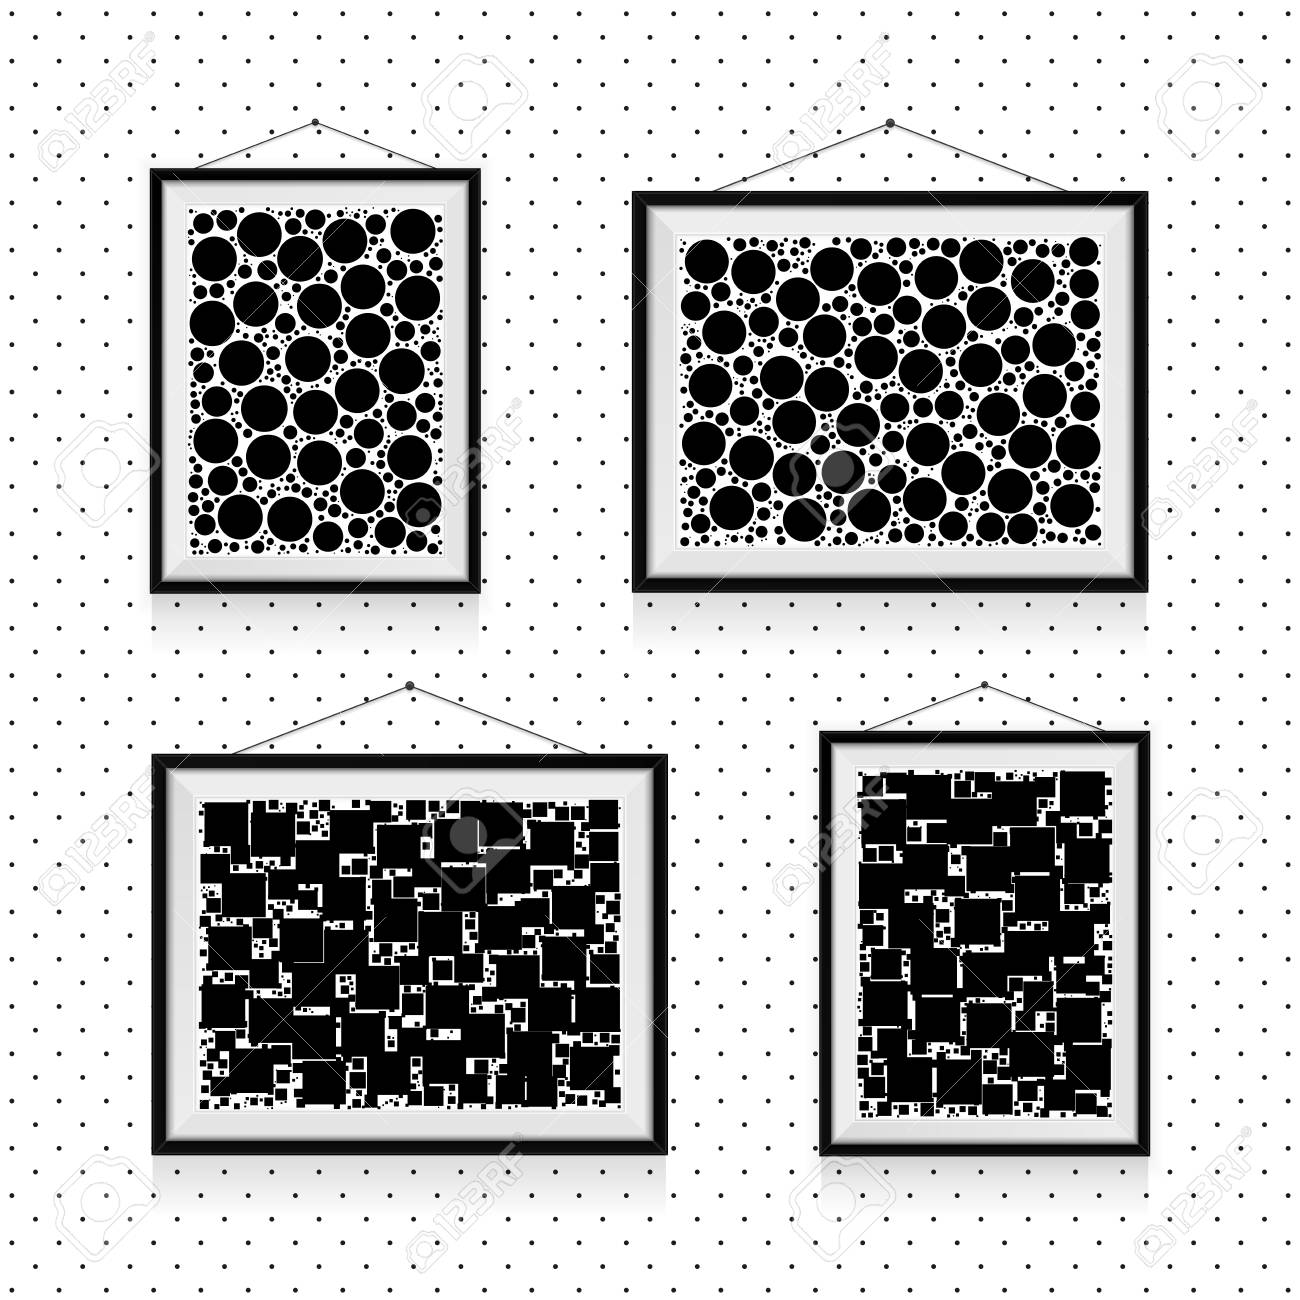 Different Types Of Simple Photo Frames With Circles And Squares